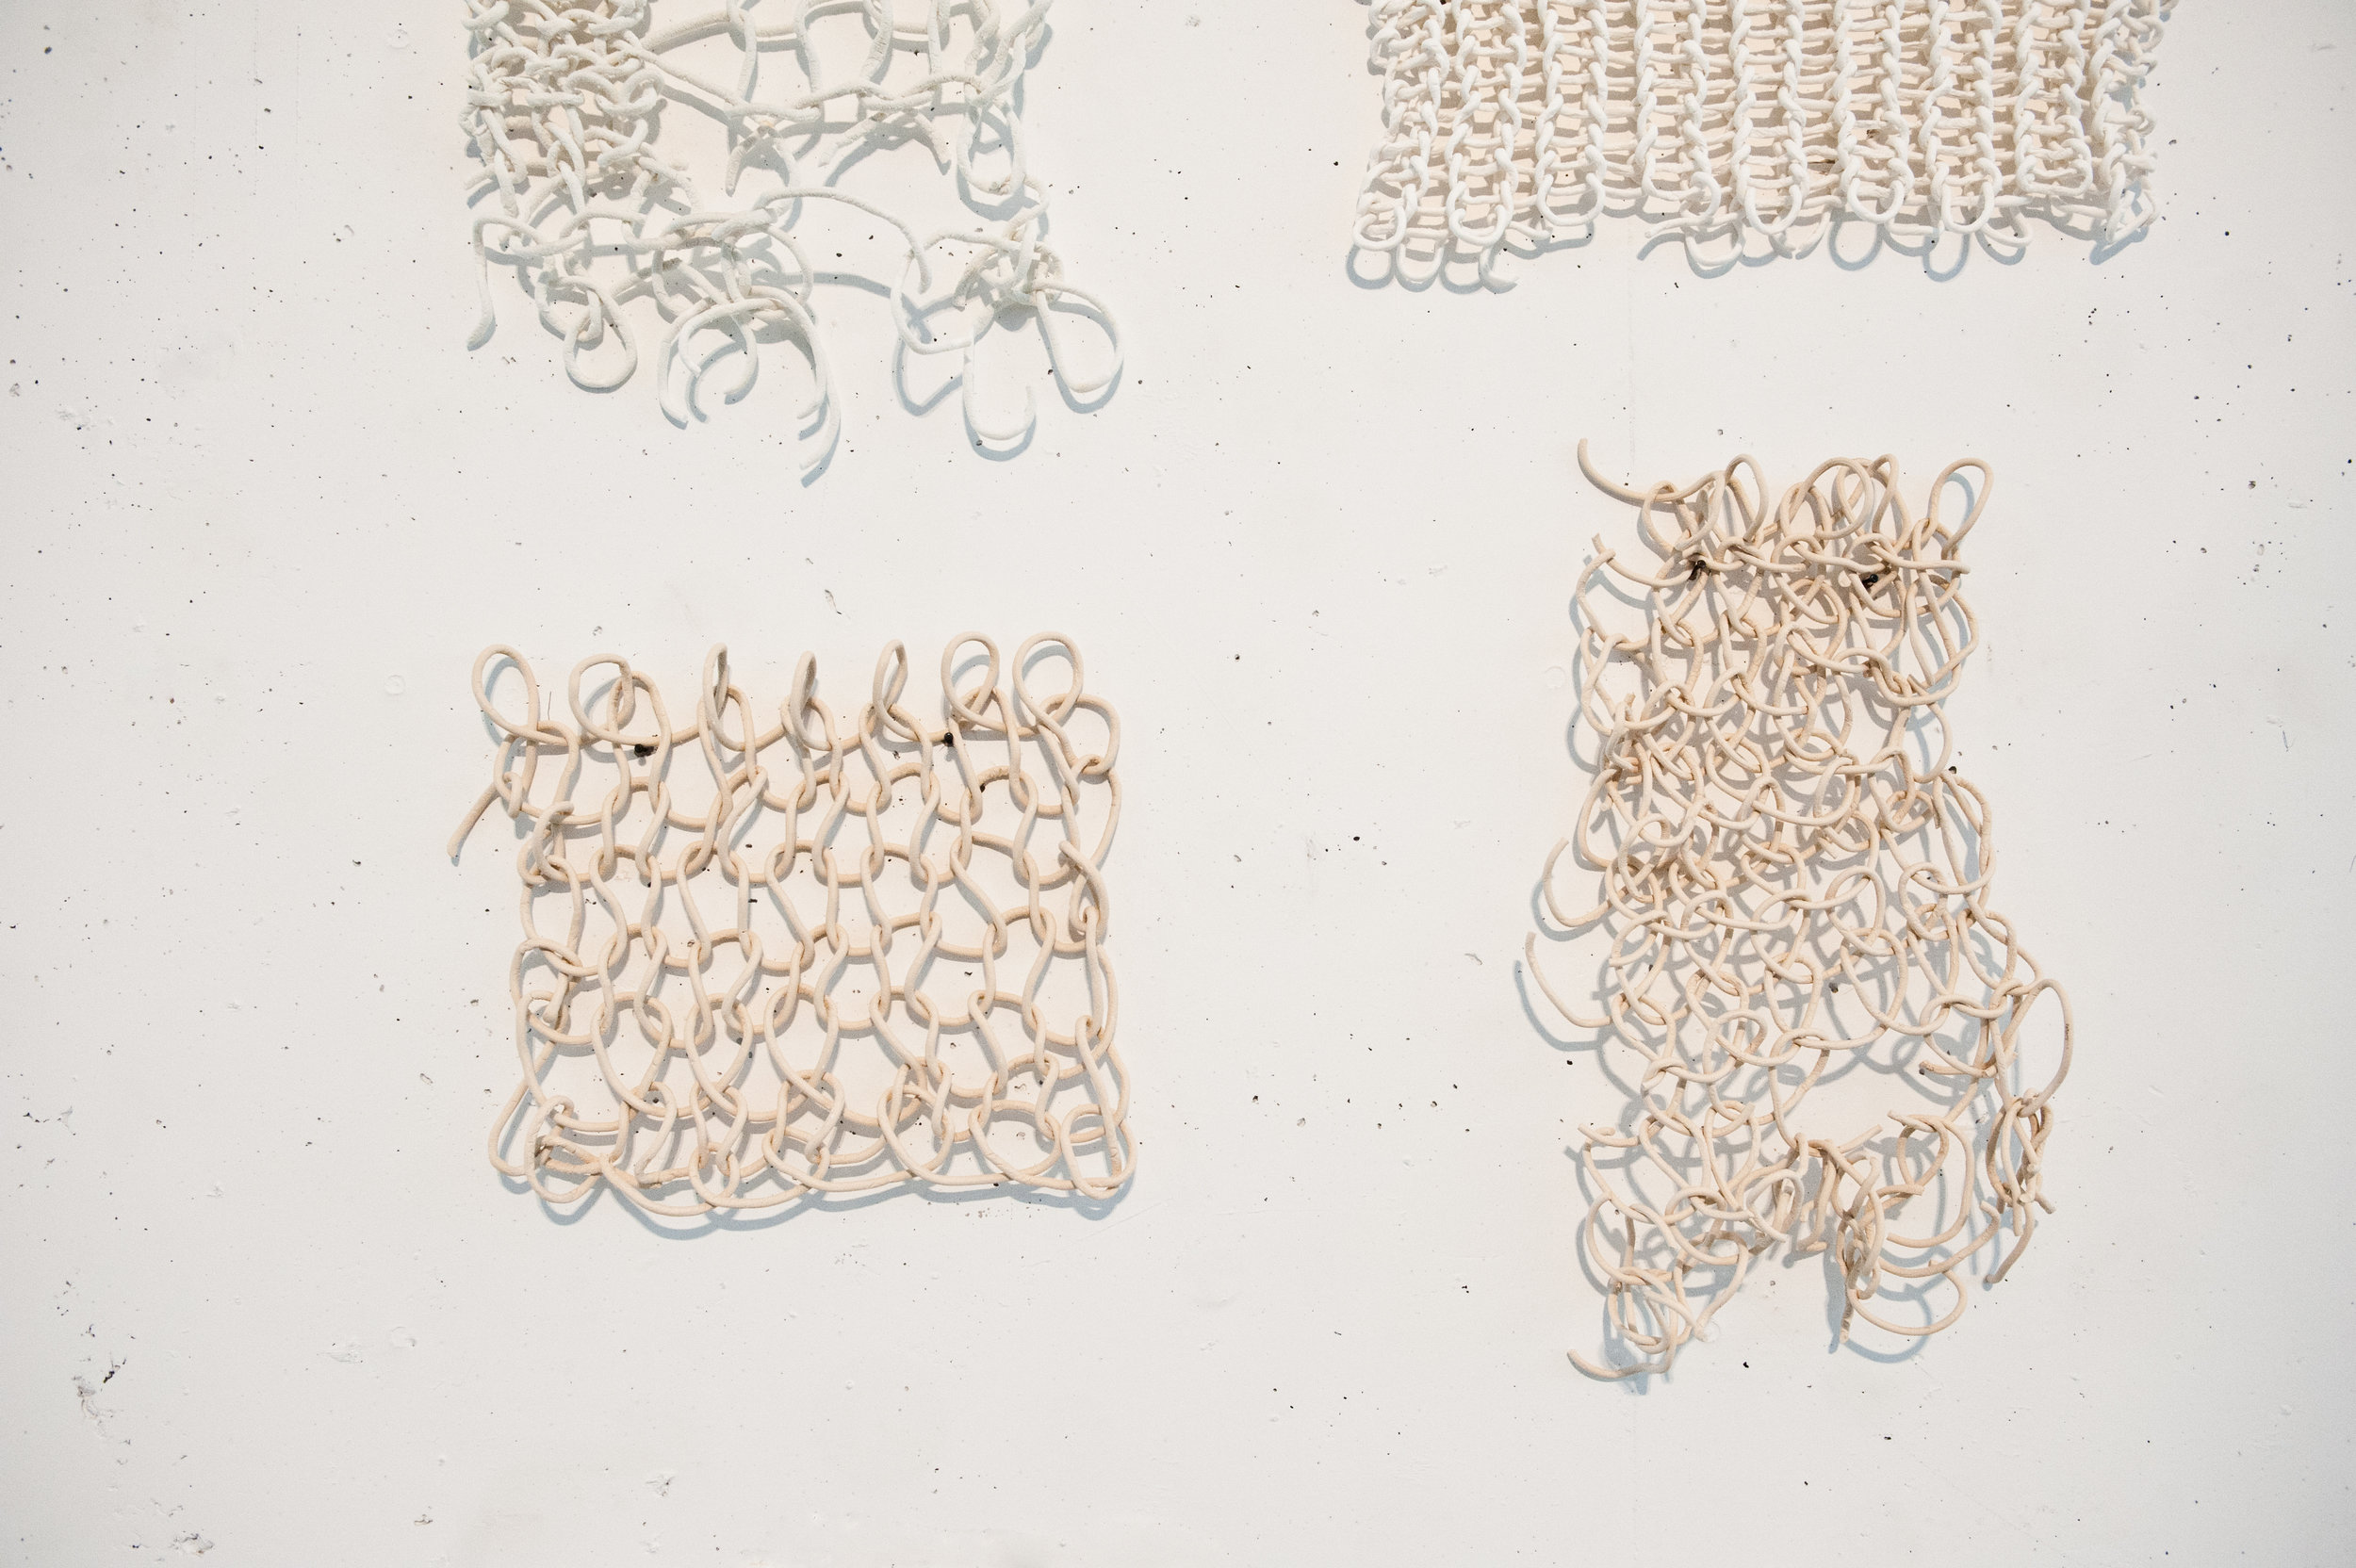 Disrupted systems , knitted porcelain, earthenware, 2011. Photo: Claudia Corrent